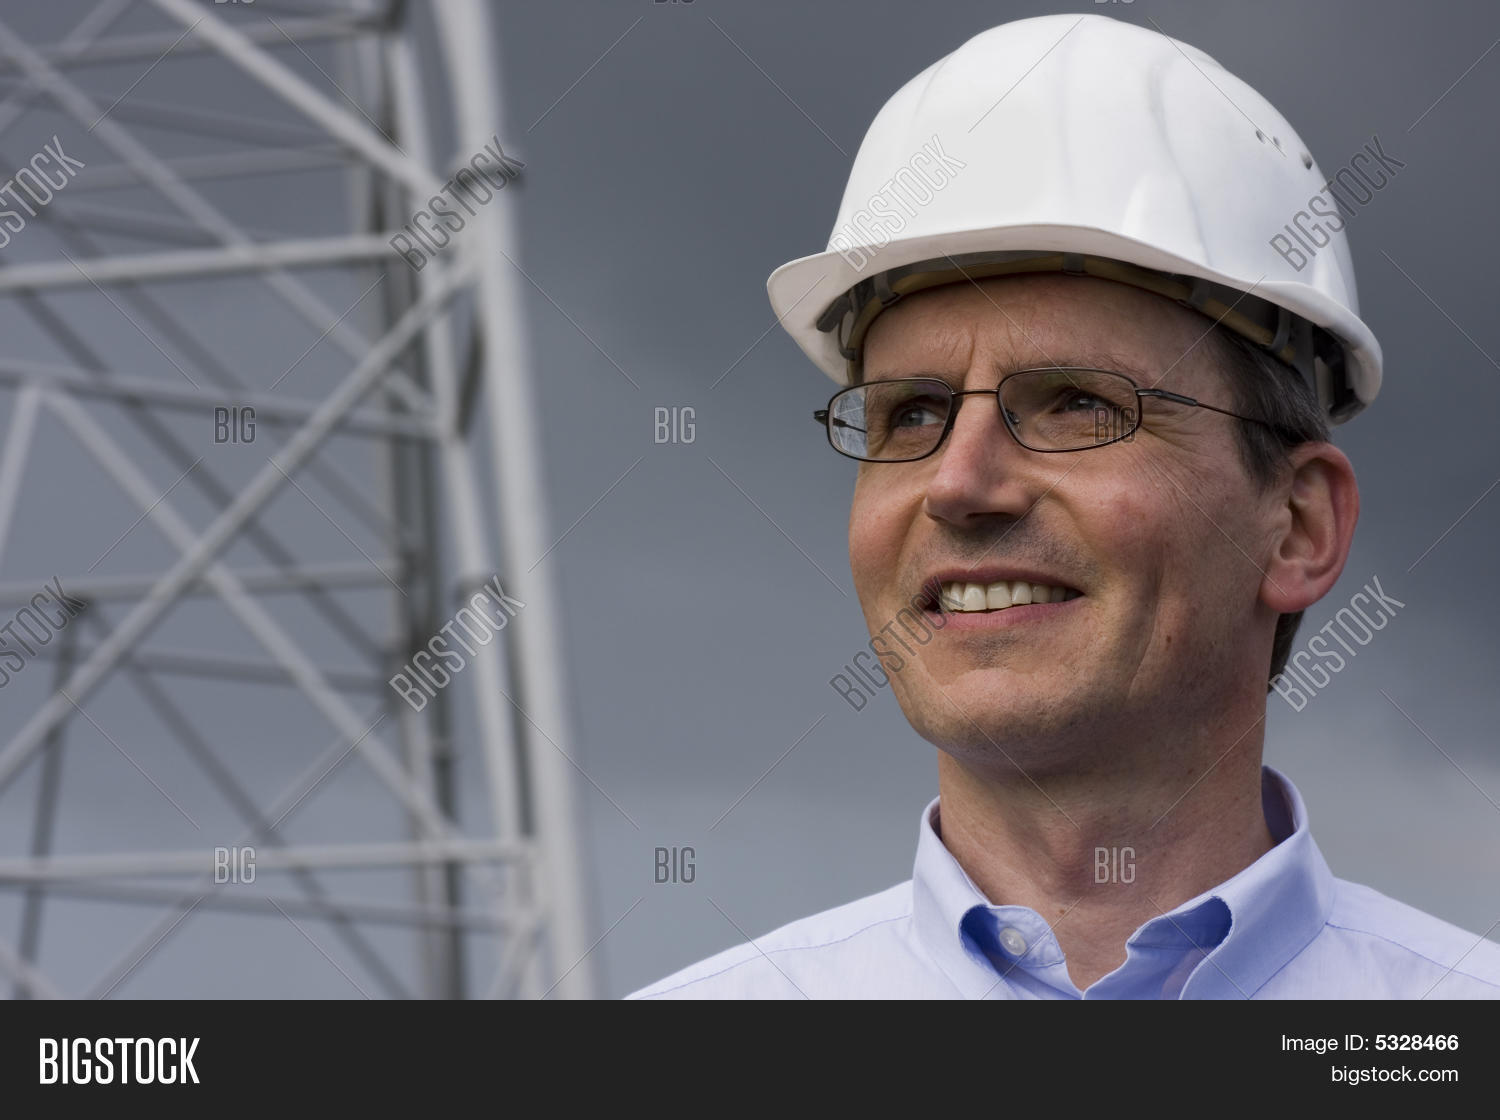 smiling engineer hardhat image photo bigstock. Black Bedroom Furniture Sets. Home Design Ideas